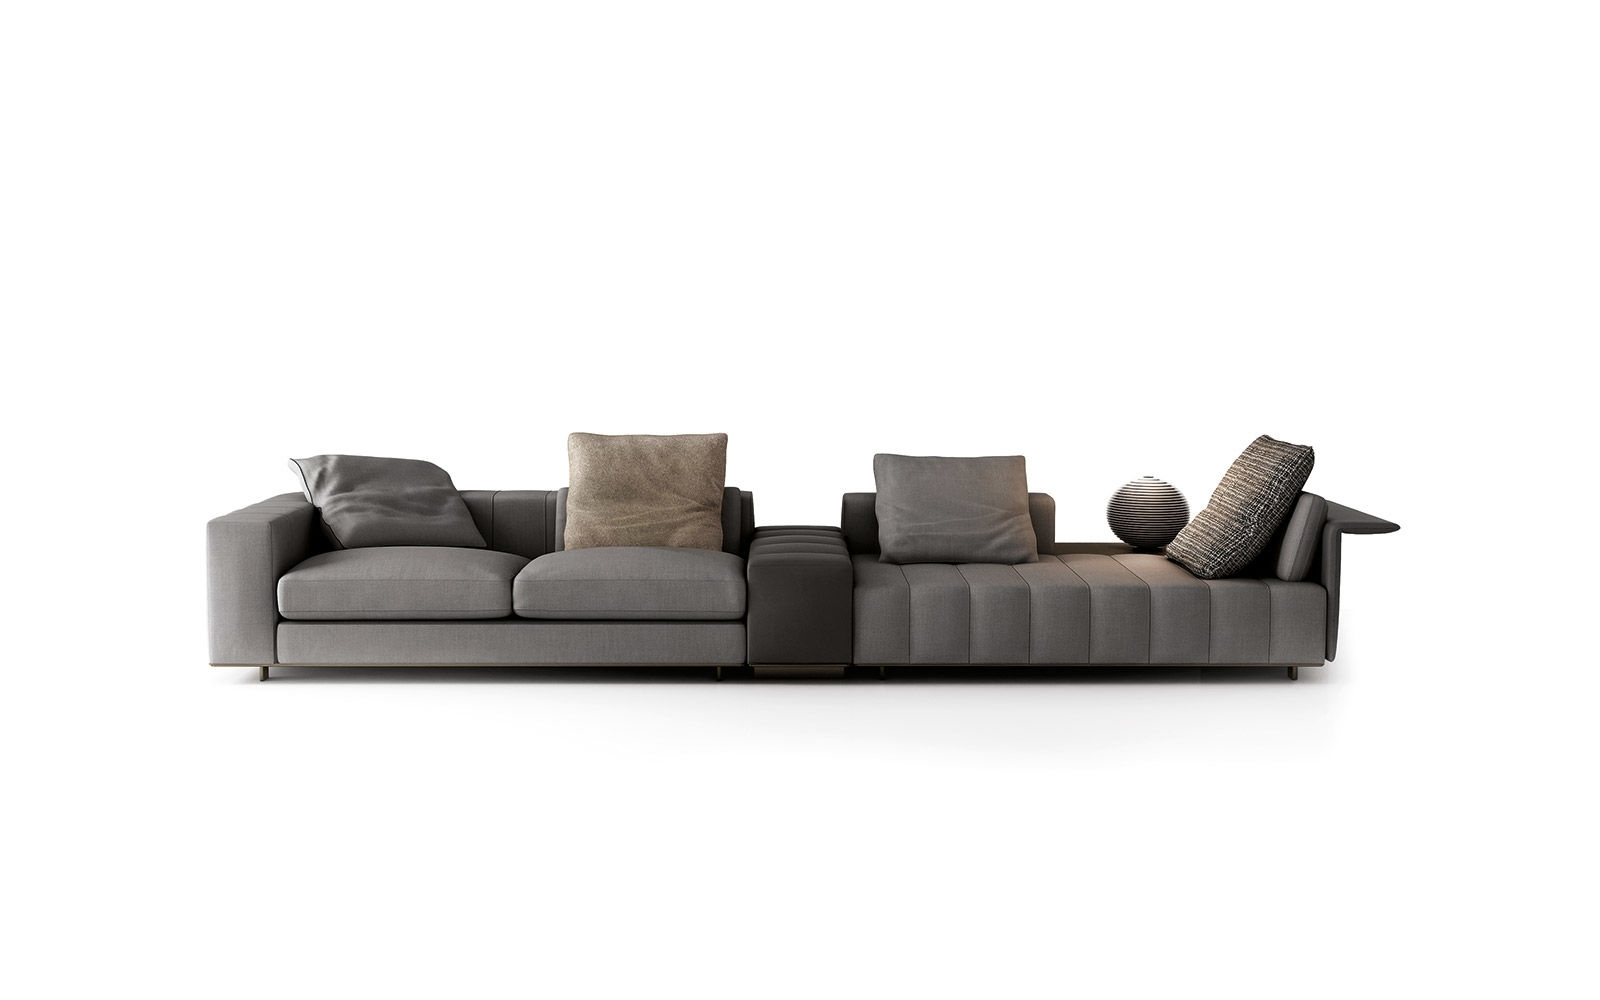 Freeman Seating System | Sofas – En Pertaining To Calder Grey 6 Piece Manual Reclining Sectionals (Image 13 of 25)